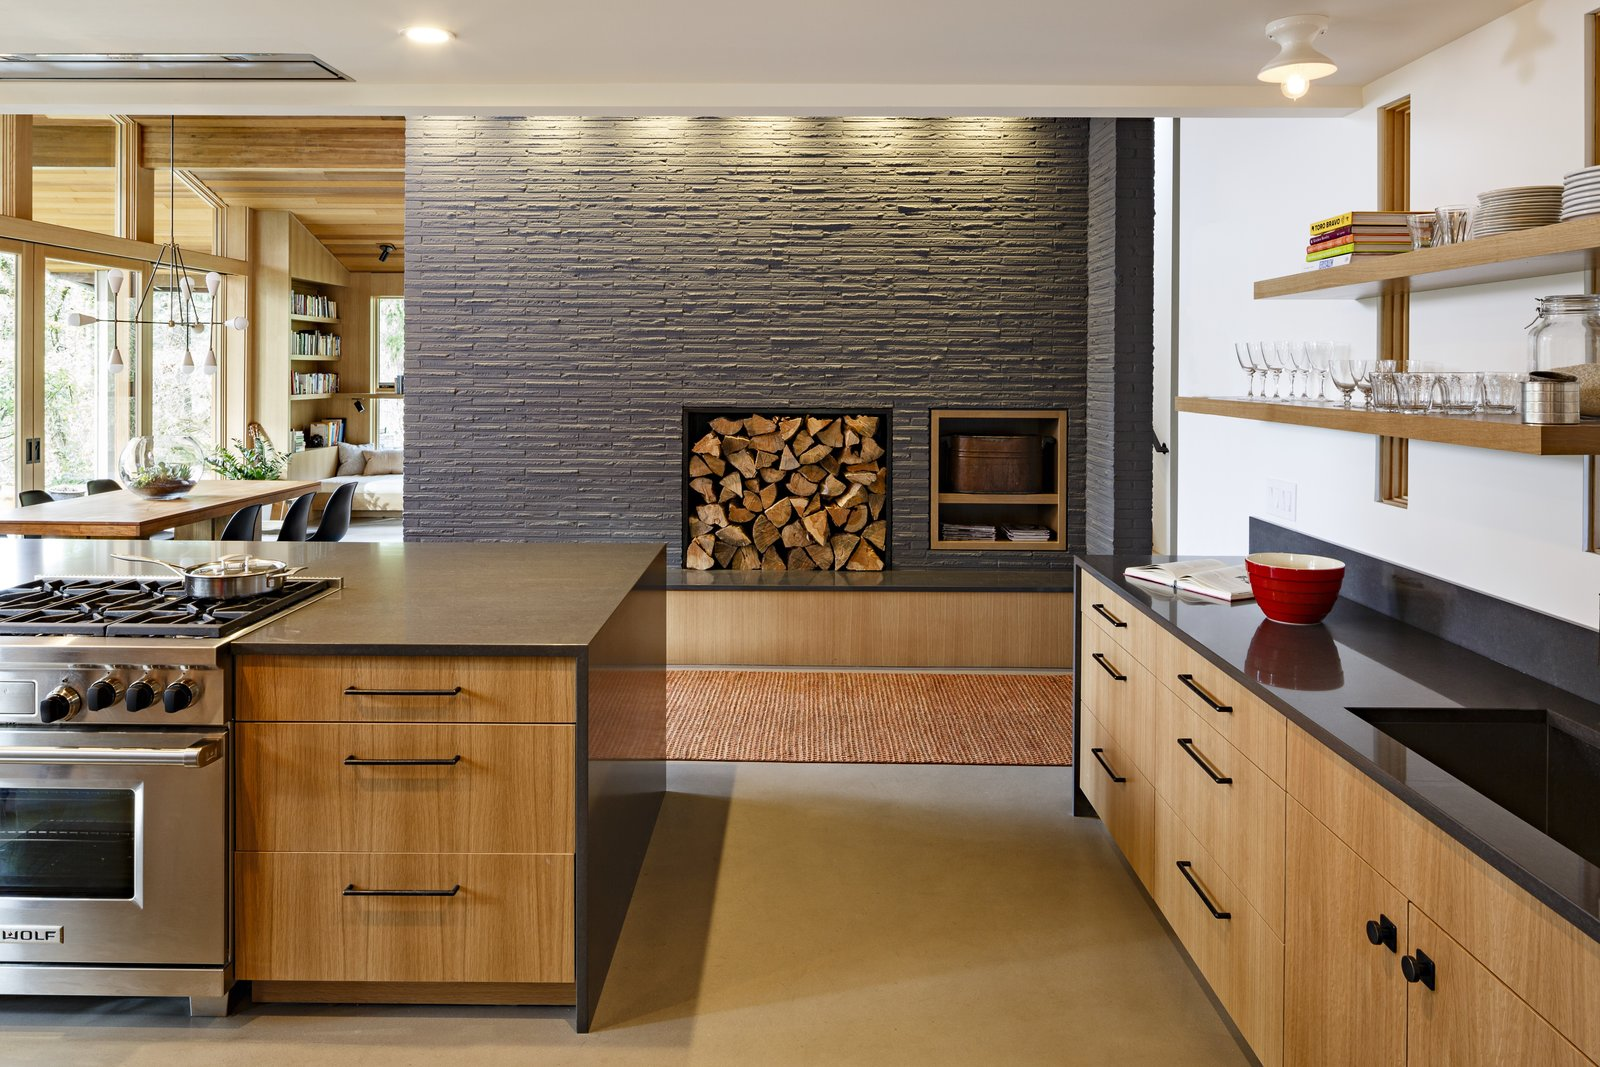 The fireplace core, which is open on both sides to the living room and here in the kitchen, had been covered in sheetrock. The design team exposed the original brick adding character and period-appropriate authenticity to the rooms.